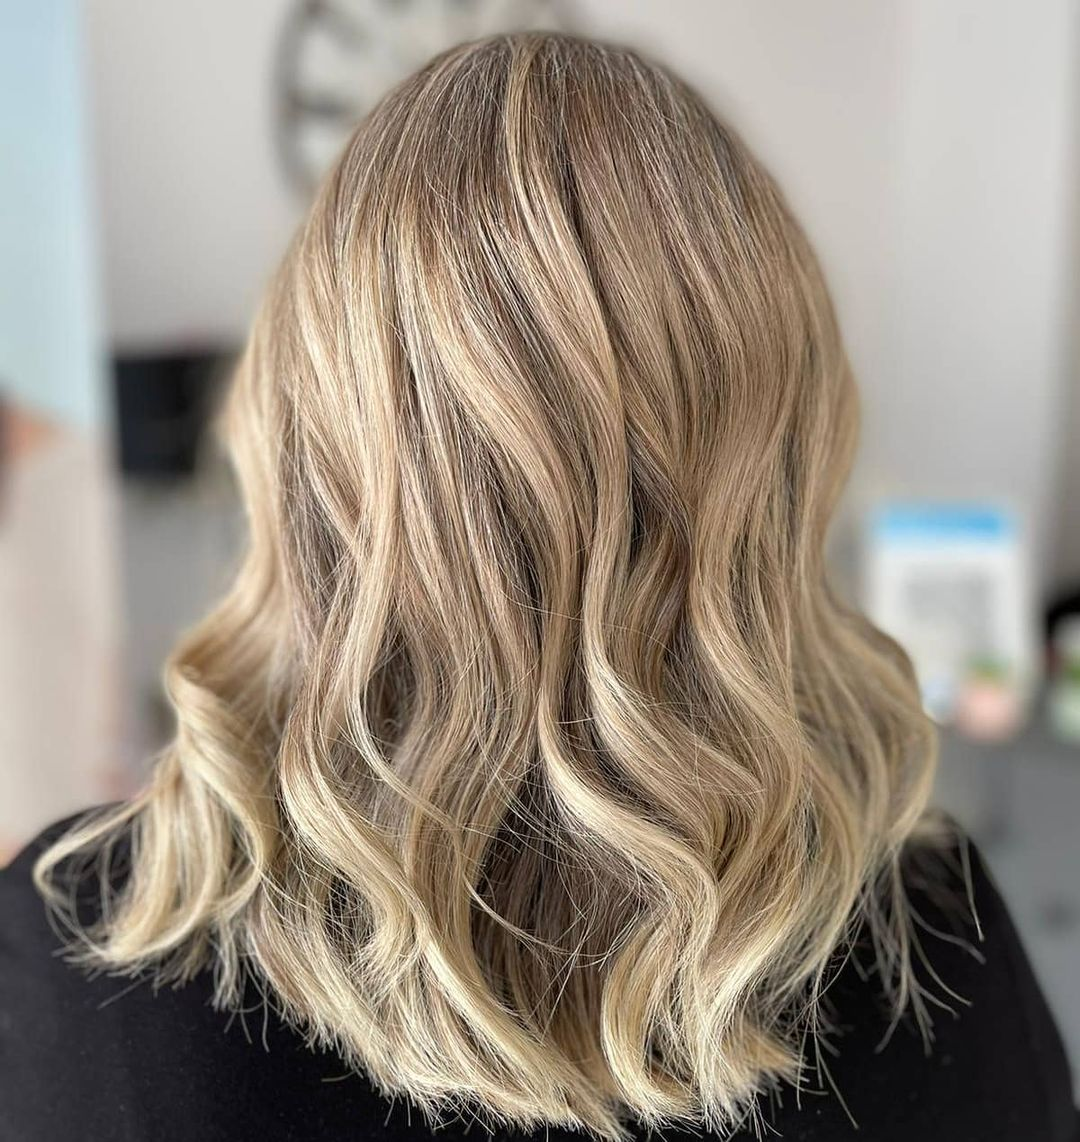 the latest balayage hair colours at At Urban Coiffeur Hair Salon In Wolverhampton, West Midlands68159_2379371889637047983_n